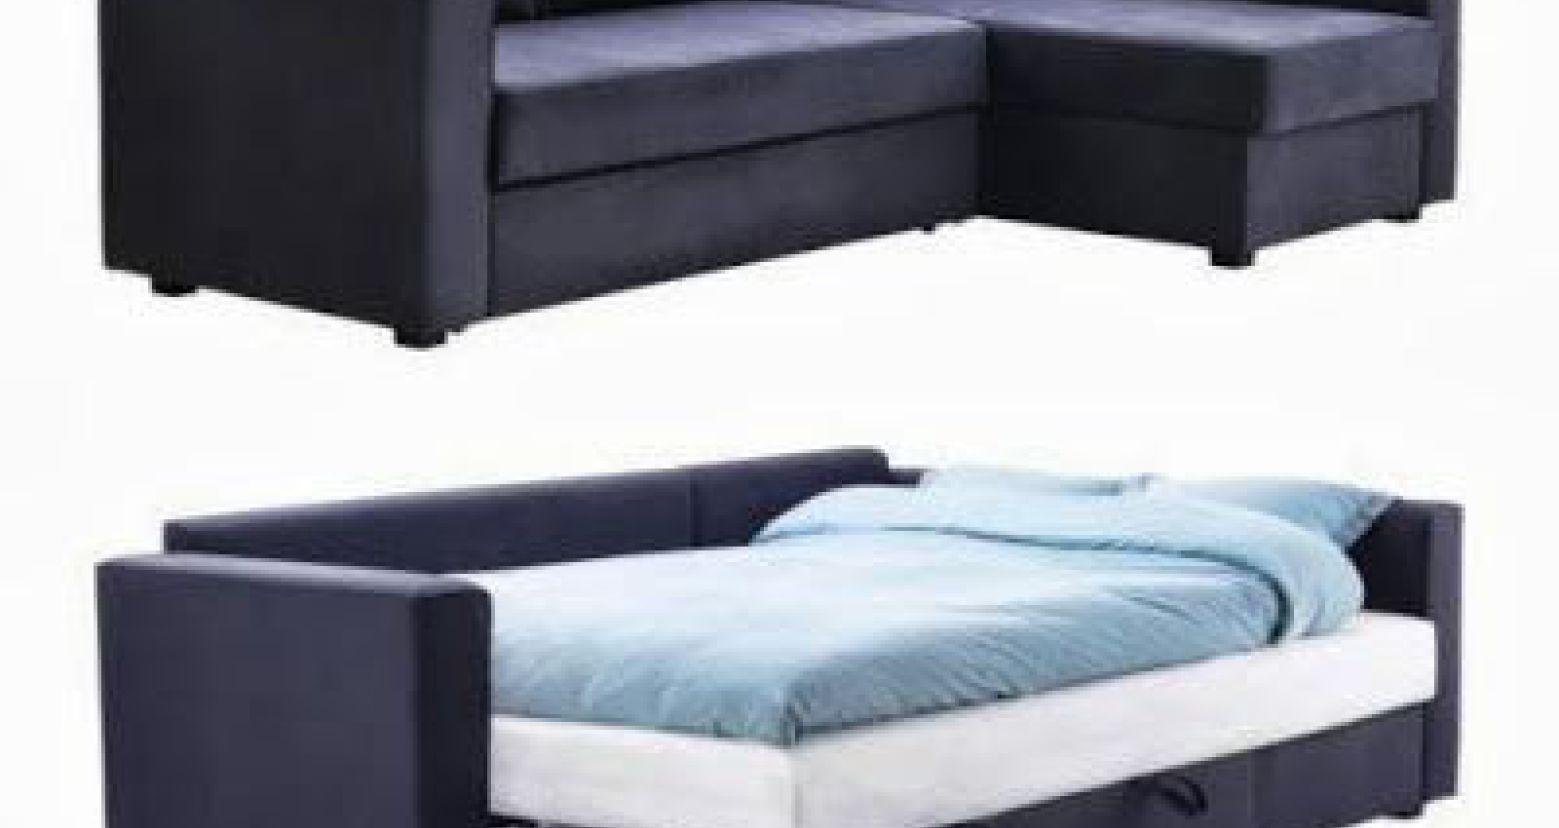 Sofa : Queen Sleeper Sofa Bed Sheets Sofas Home Decorating Ideas Throughout Queen Size Sofa Bed Sheets (View 13 of 21)